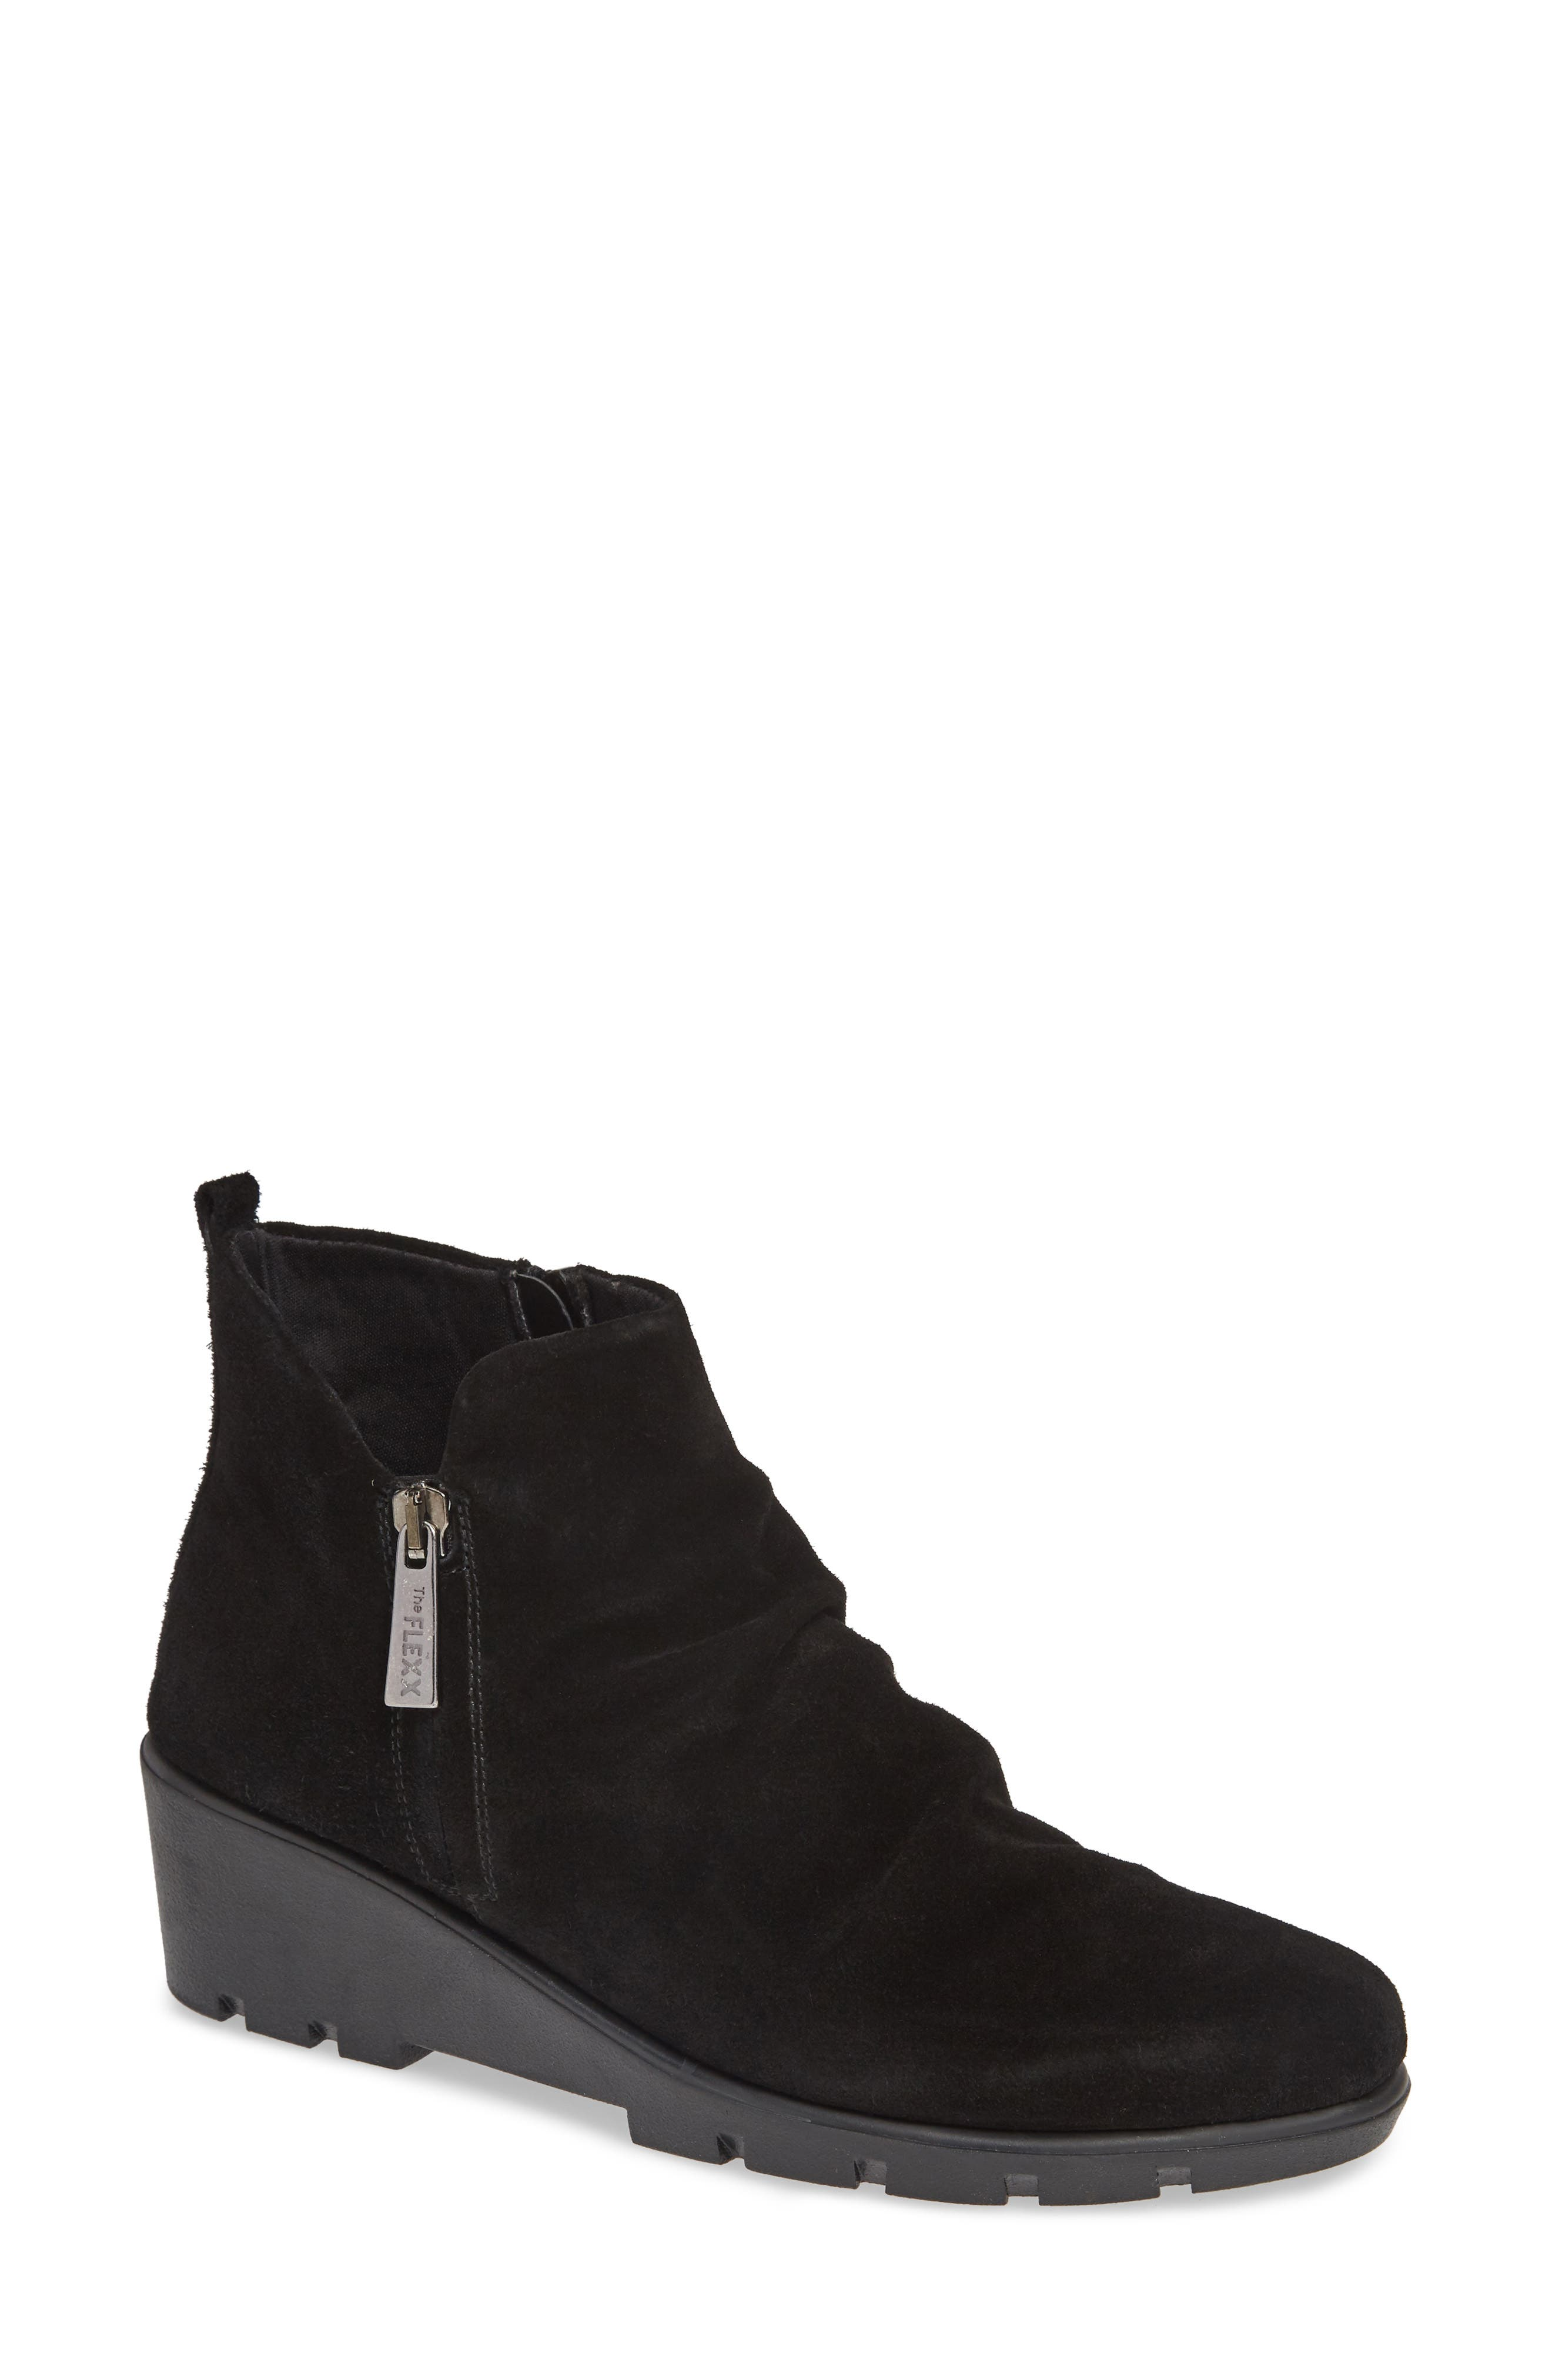 The Flexx Slingshot Ankle Bootie, Black